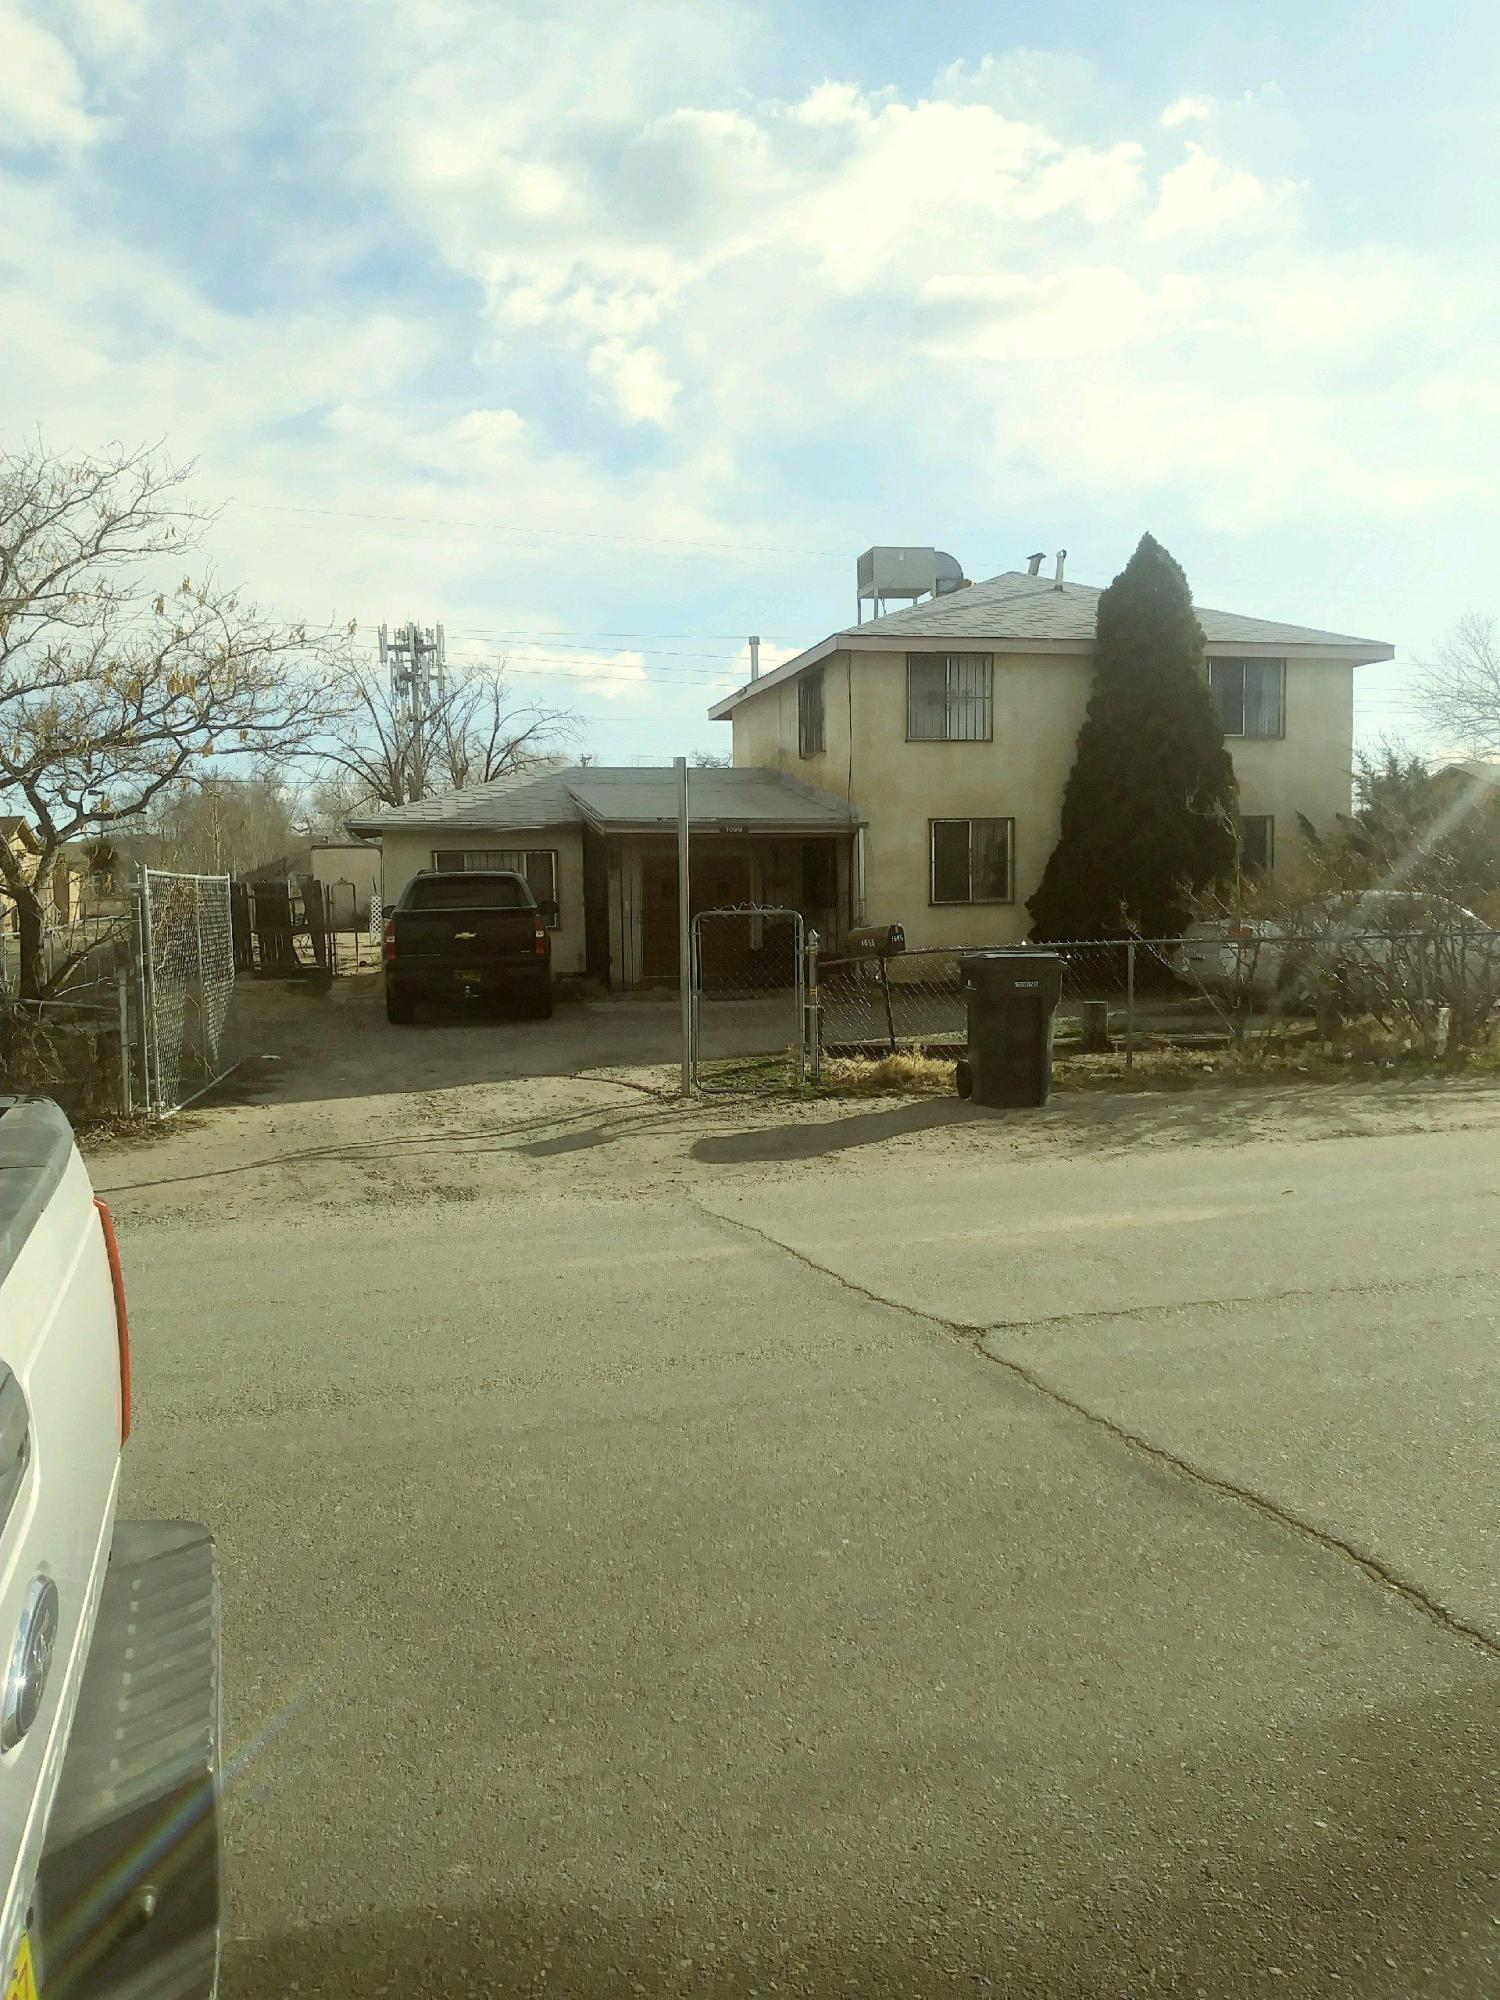 Within walking distance of shoppng center, schllos and park. Well kept interior. Large fenced yard